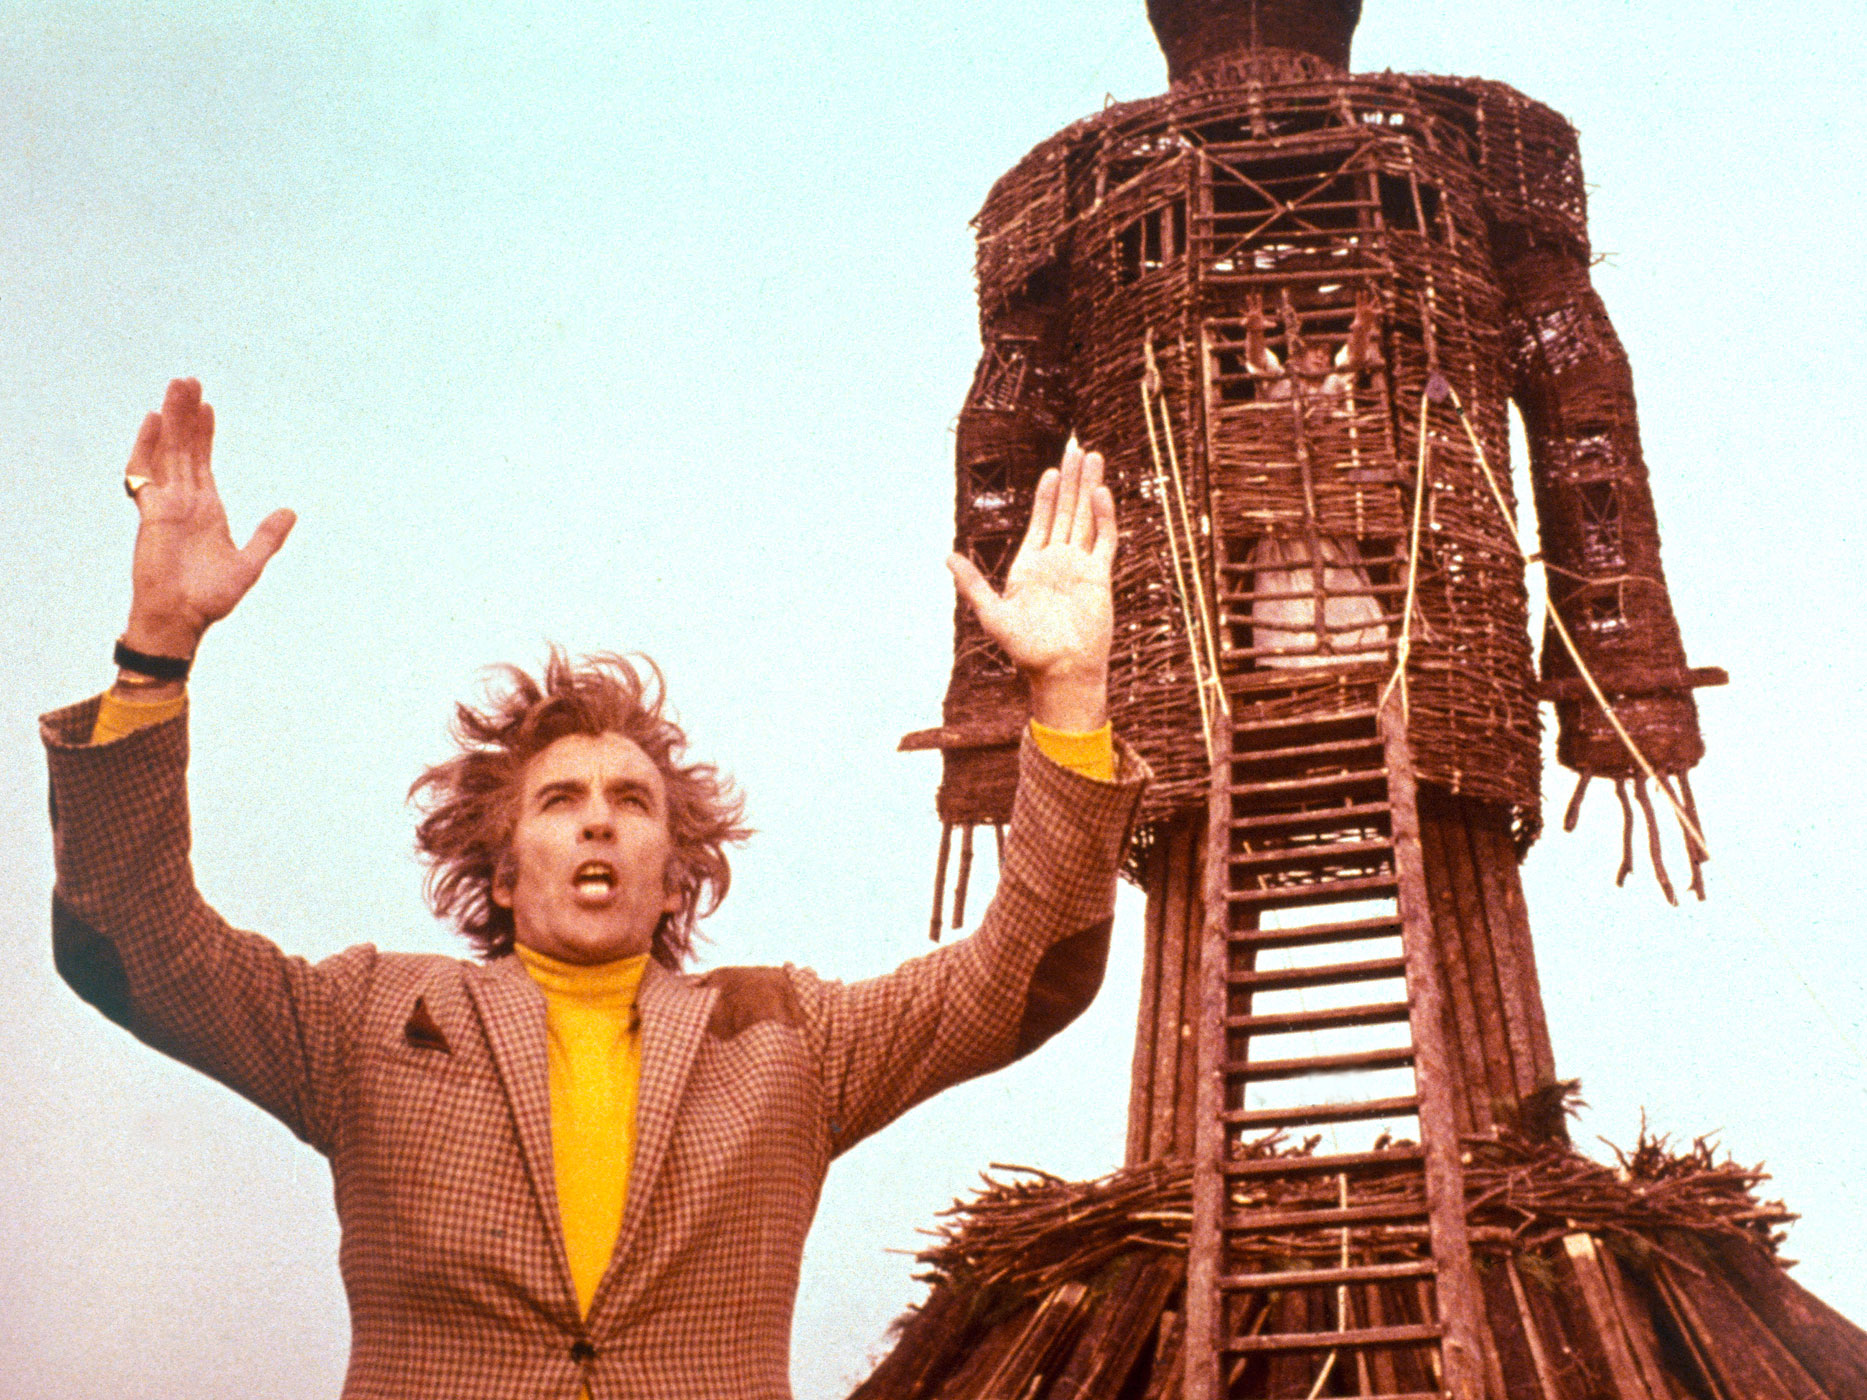 The Wicker Man, 1973. Paganism and human sacrifice flourish on the isolated Hebridean island of Summerisle, where the local lord (Christopher Lee) has May Day plans for a visiting detective (Edward Woodward). Scripted by Anthony Shaffer and directed by Robin Hardy, the movie inspired both the Iron Maiden song and the Wickerman music festival, held each July in Dundrennan.